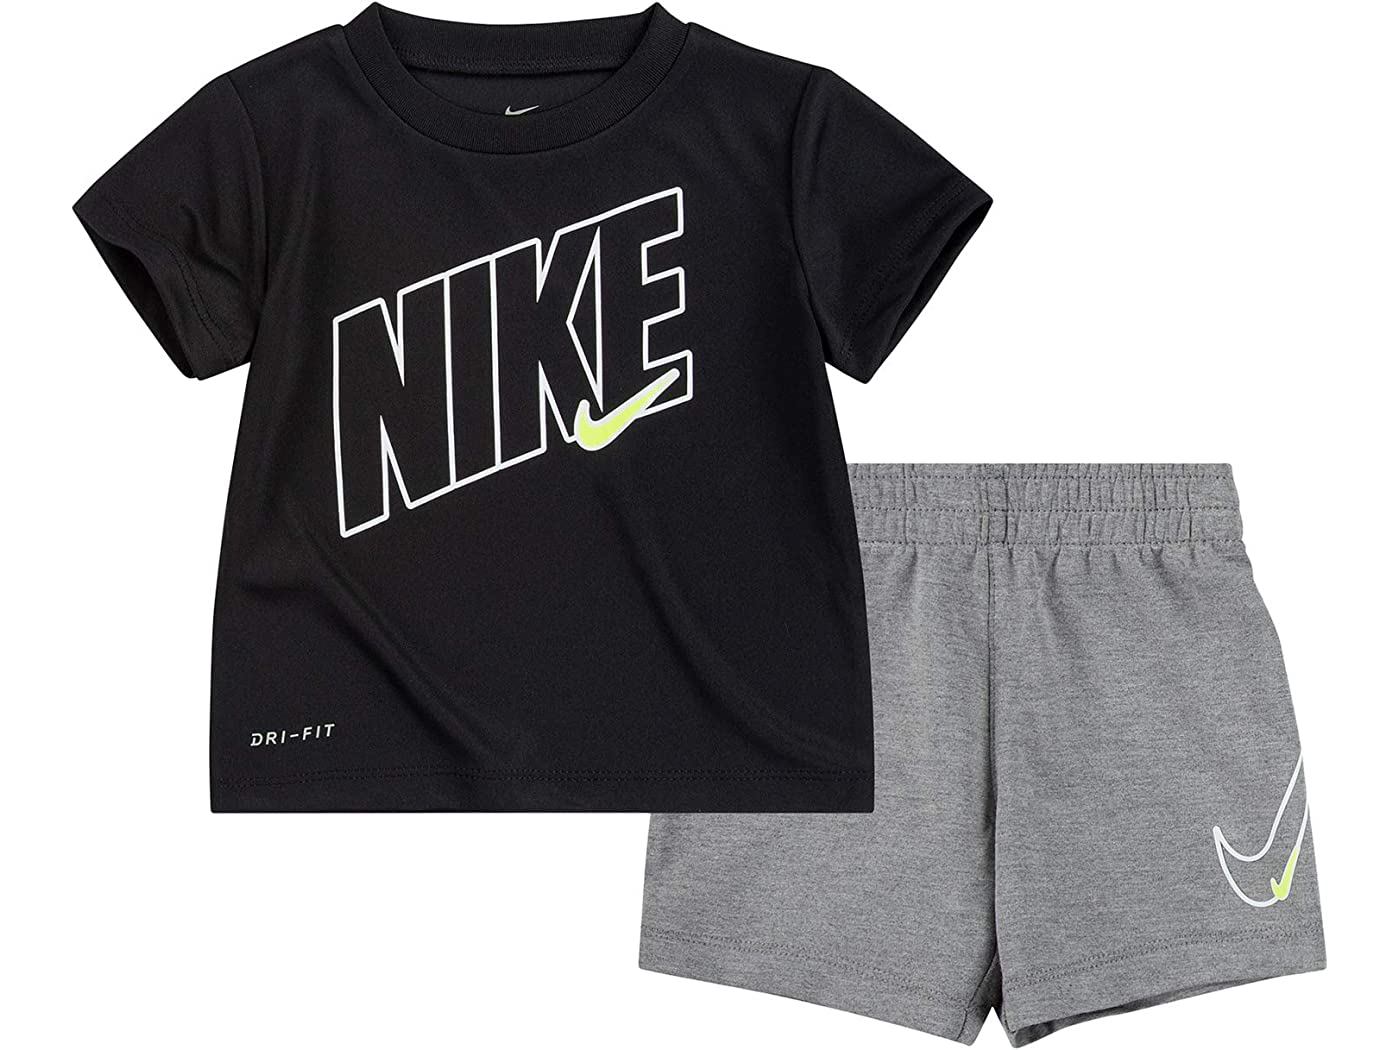 Nike Kids Dri-FIT Graphic T-Shirt and Shorts Two-Piece Set (Infant)